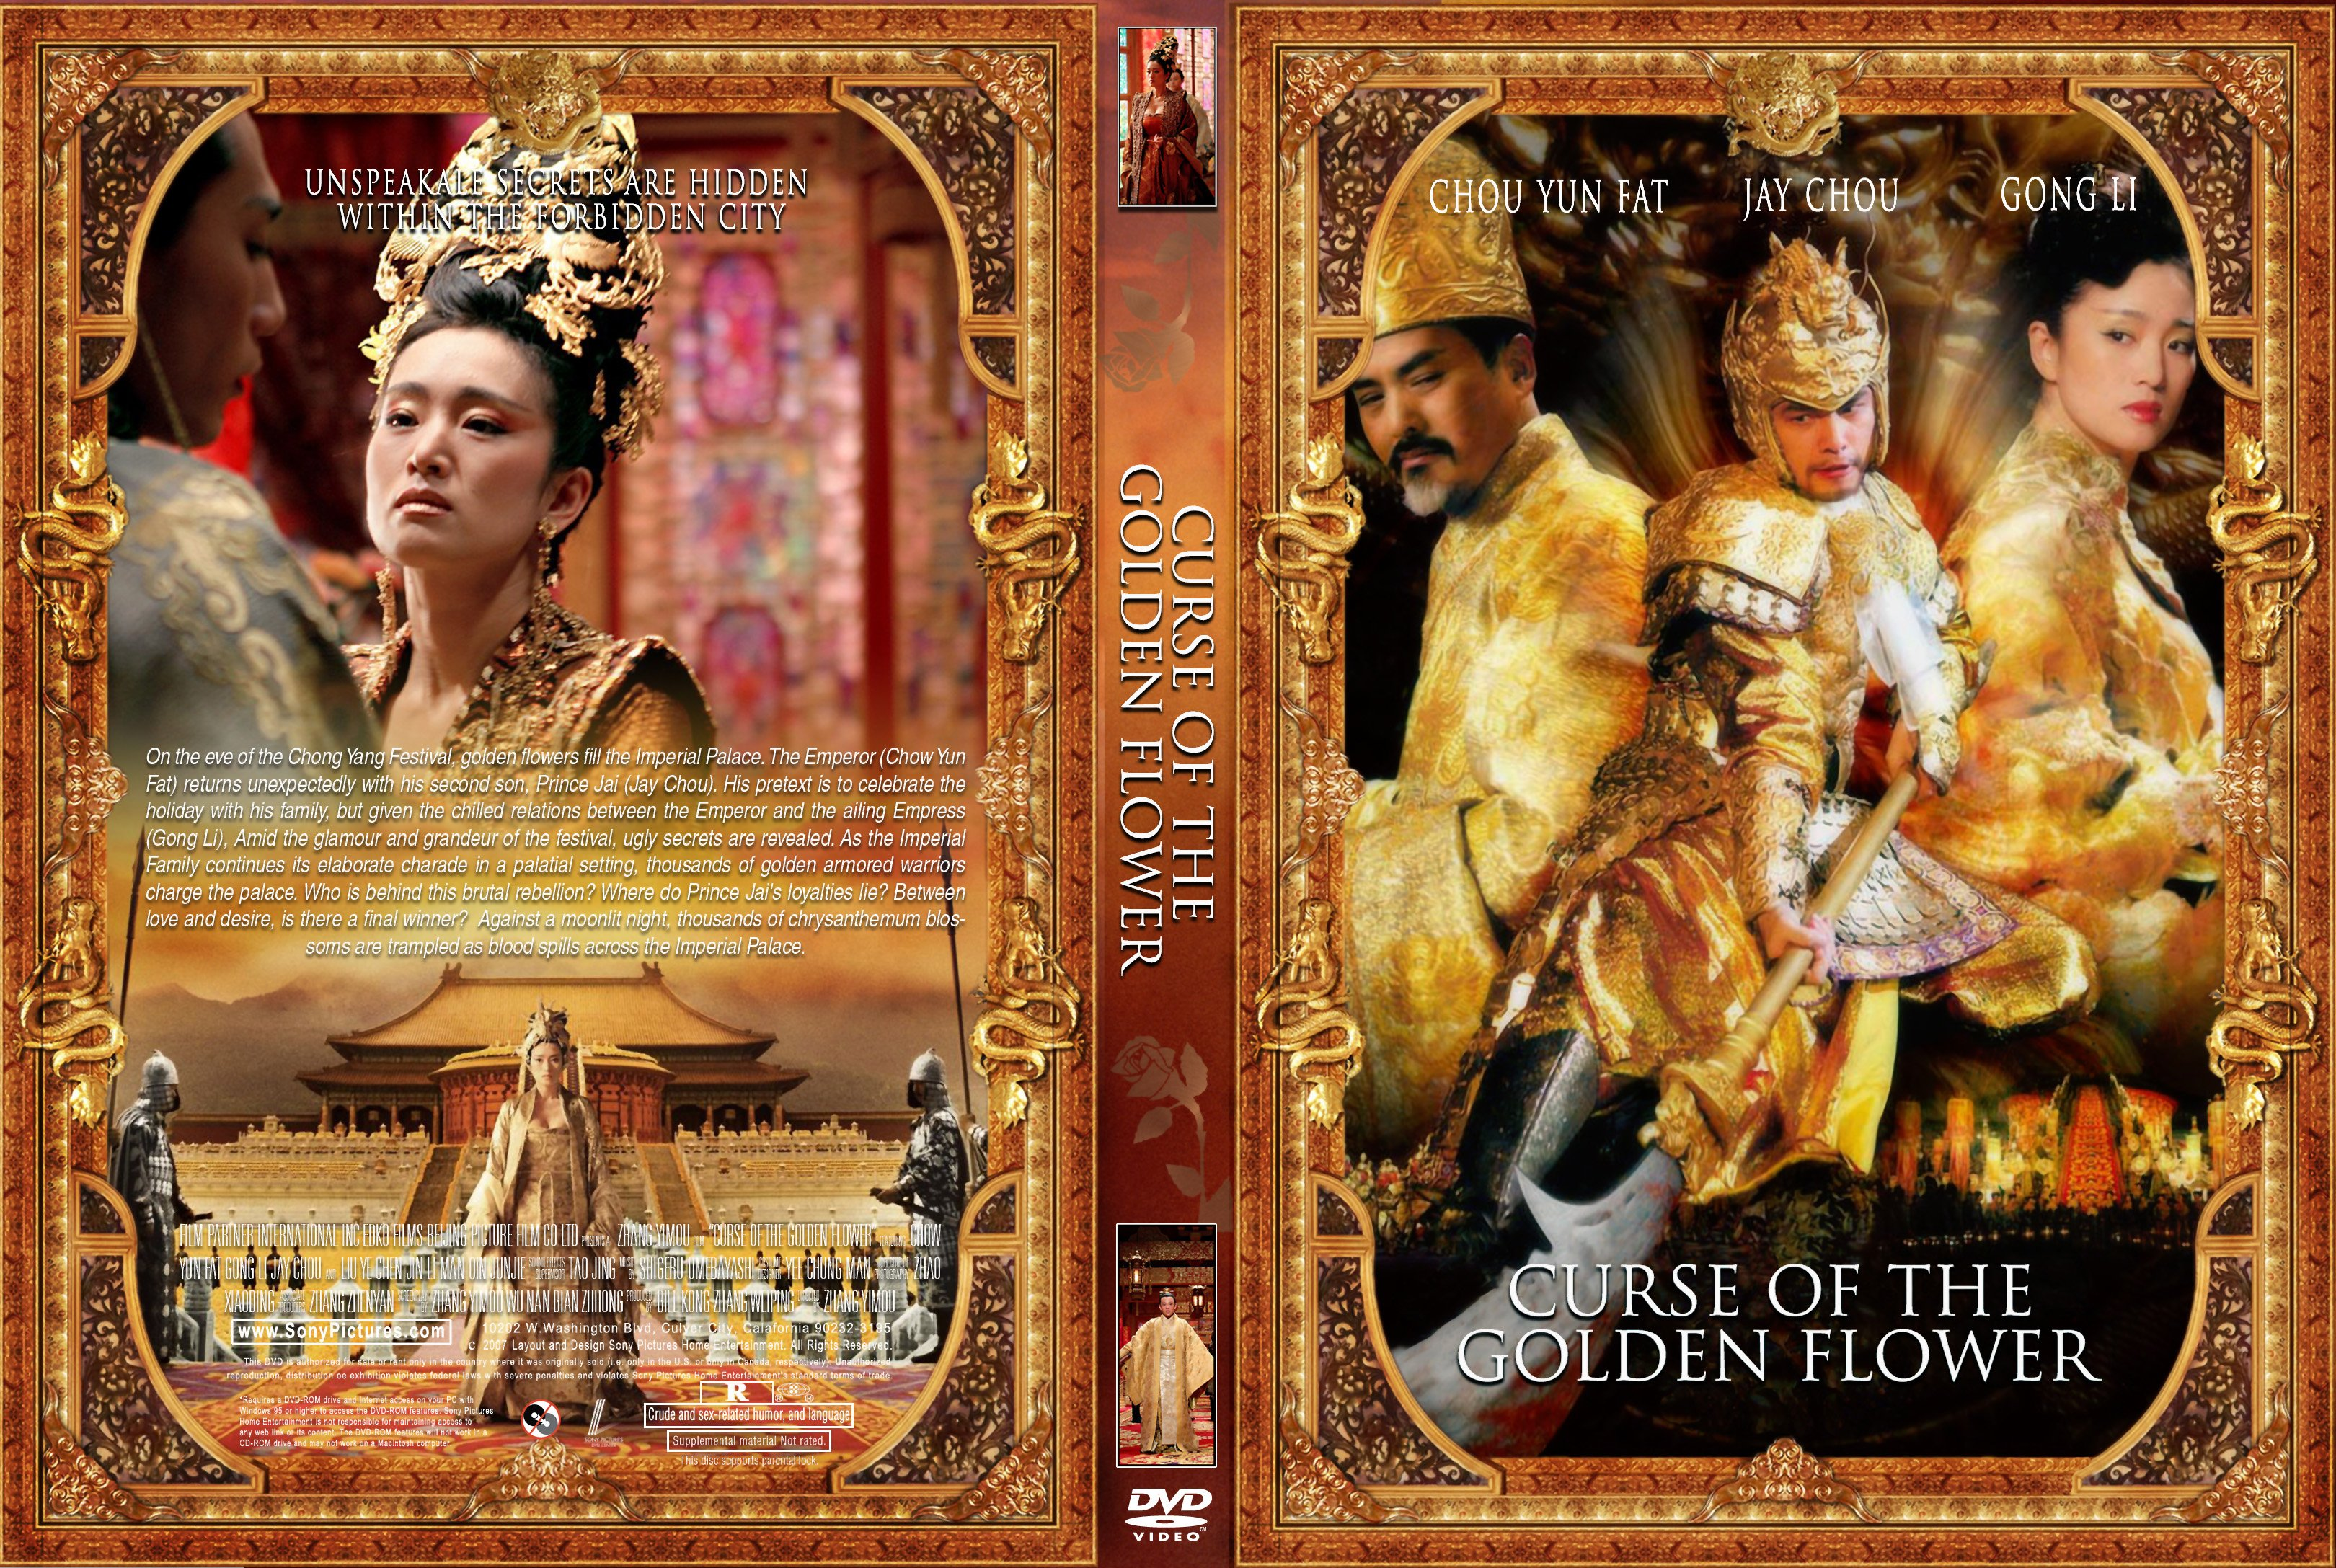 COVERS BOX SK Curse of the Golden Flower 2006 high quality DVD Bluera